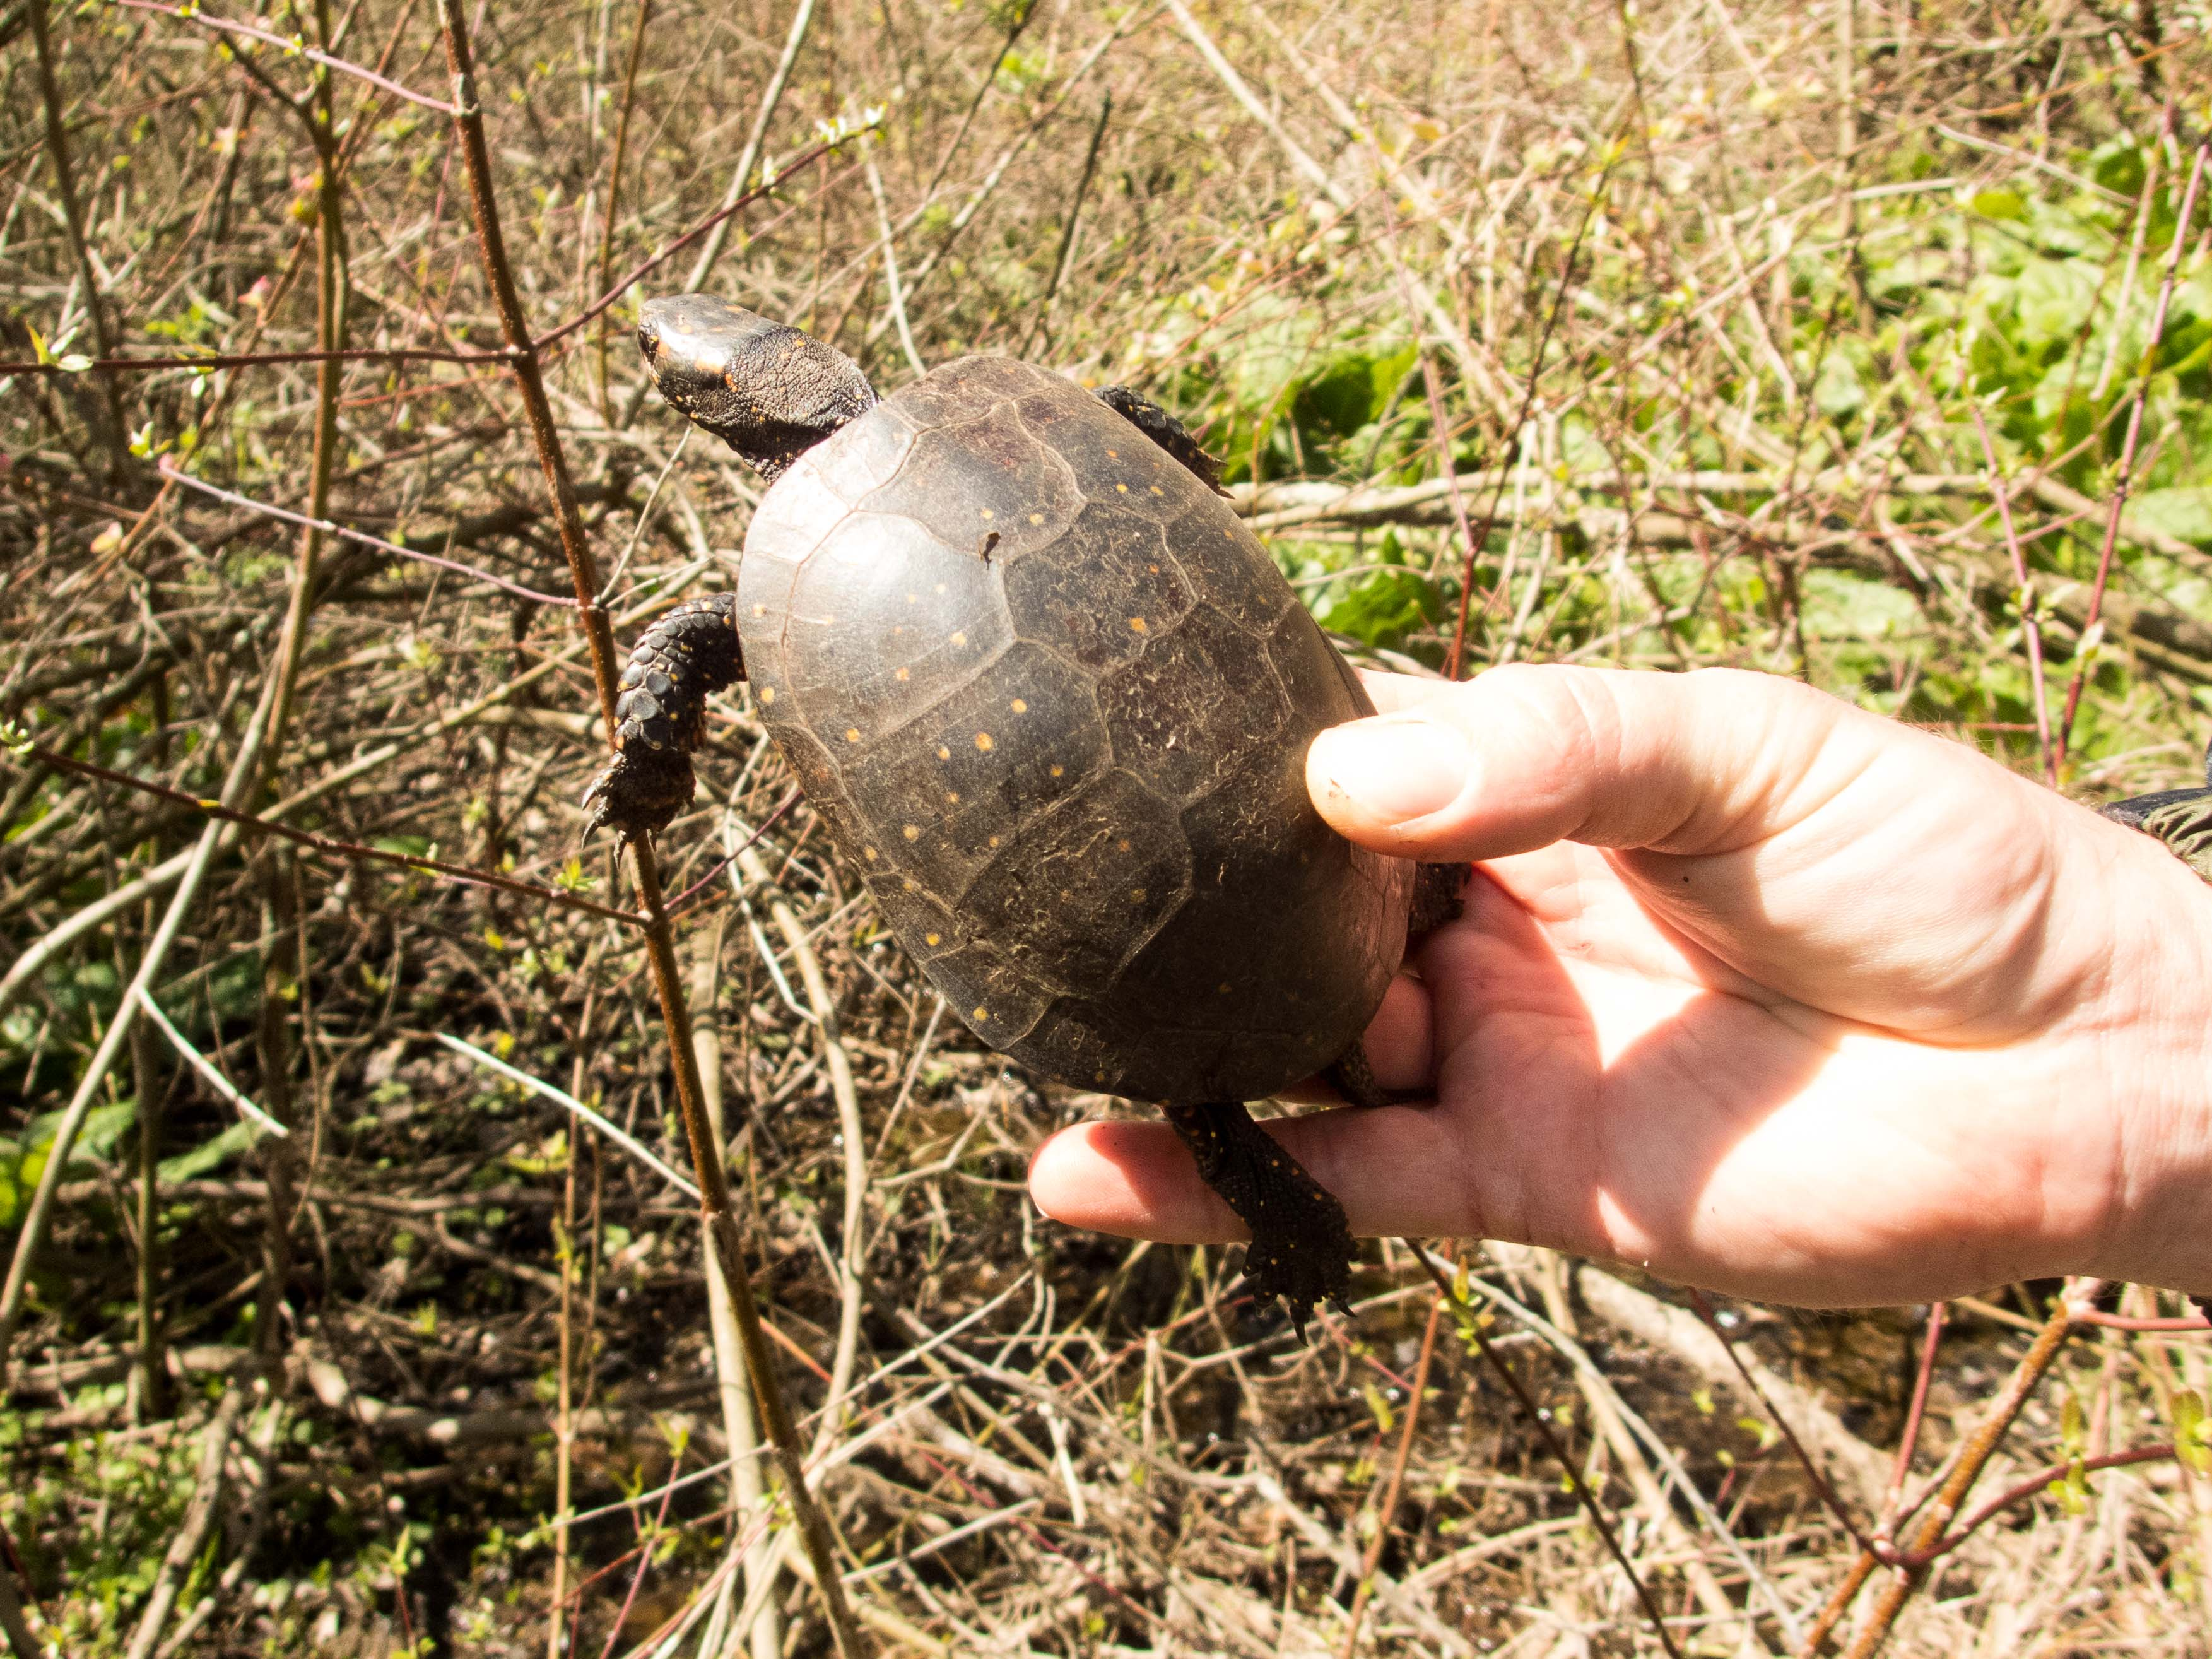 Adult Clemmys guttata (Spotted Turtle), Lancaster County, PA